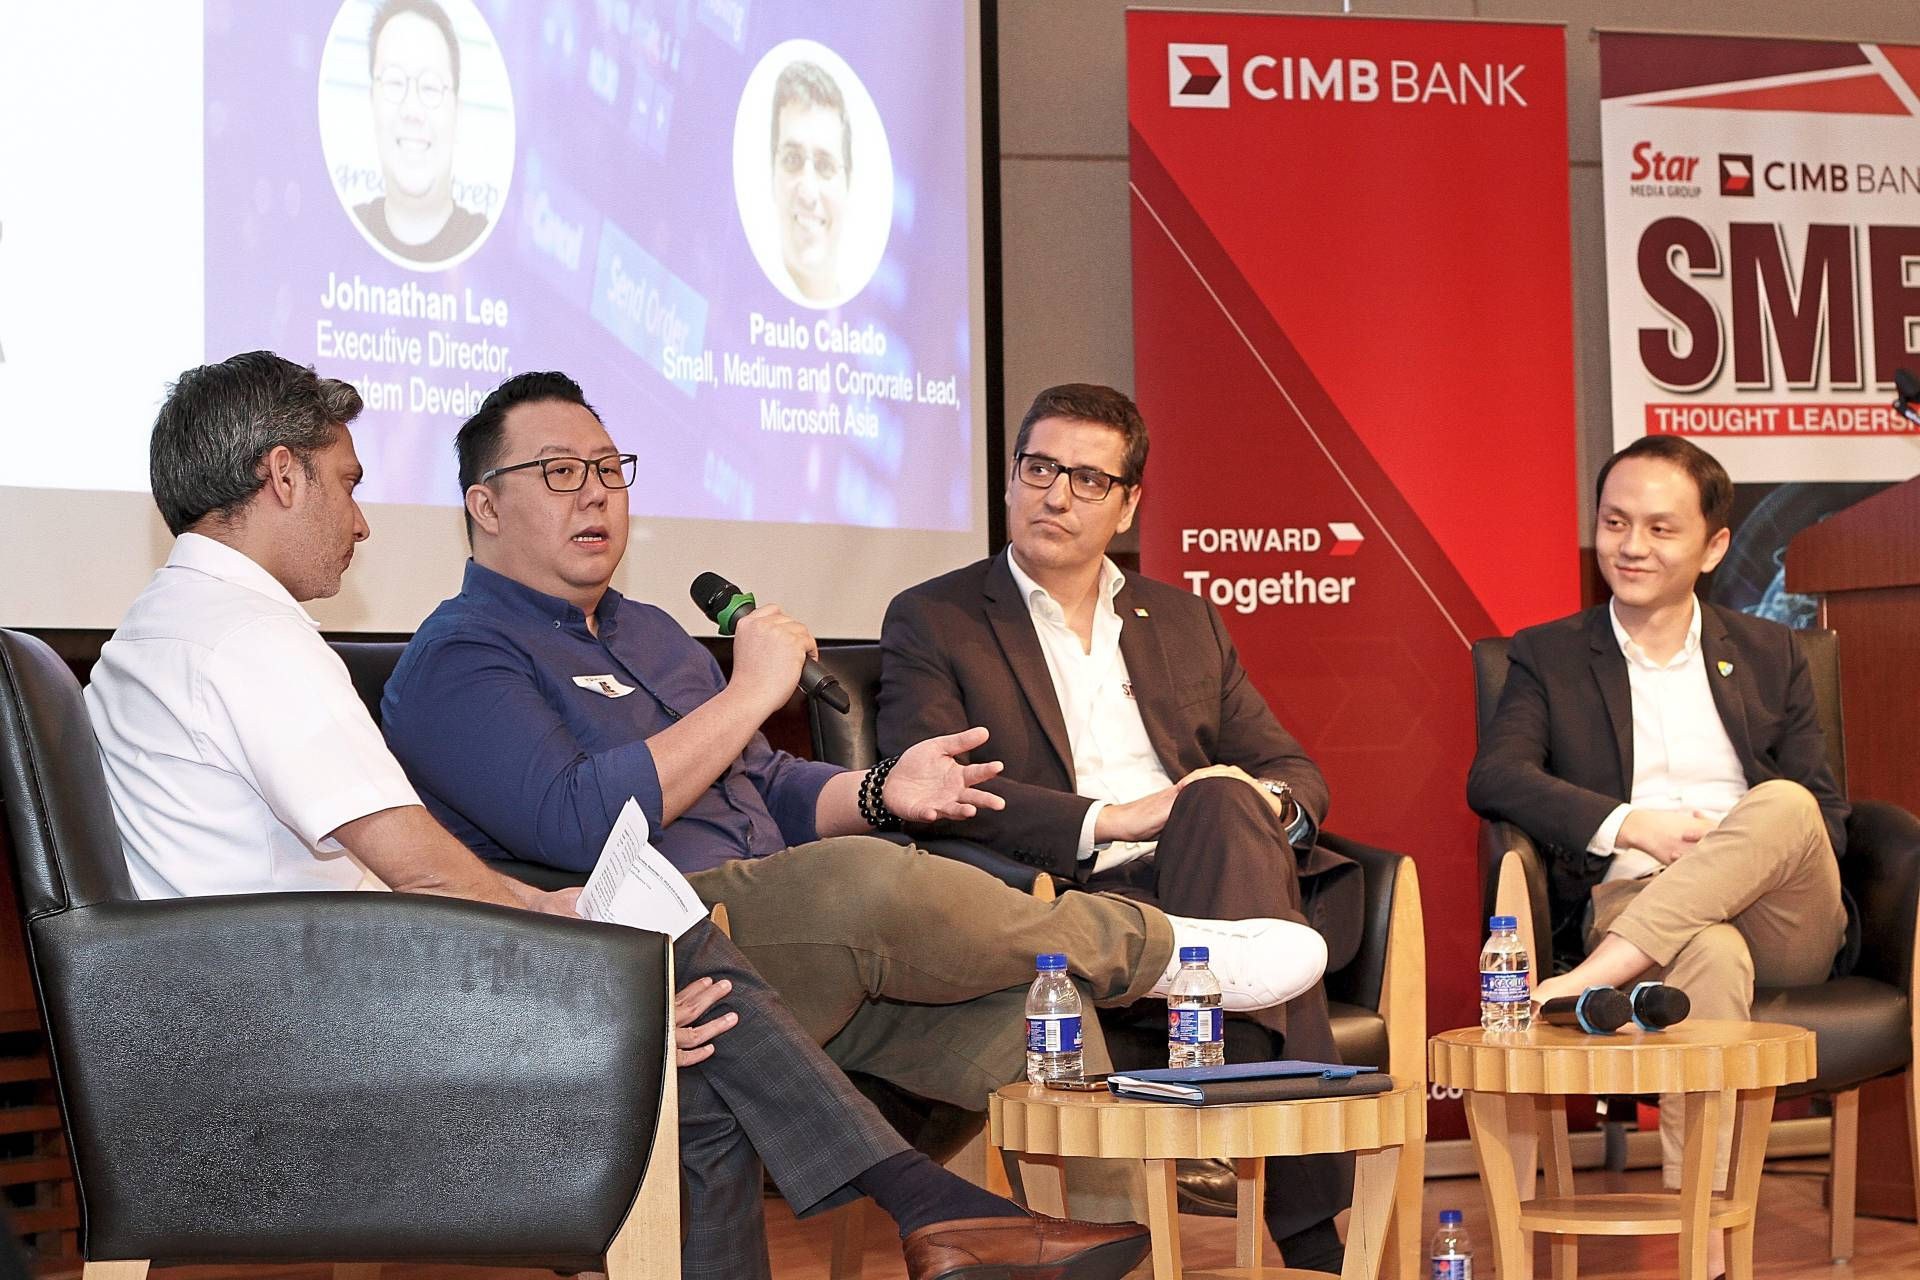 Weighing in: (from left) Shah Muhammad, Lee, Calado and Mah share their views at the recent panel discussion.